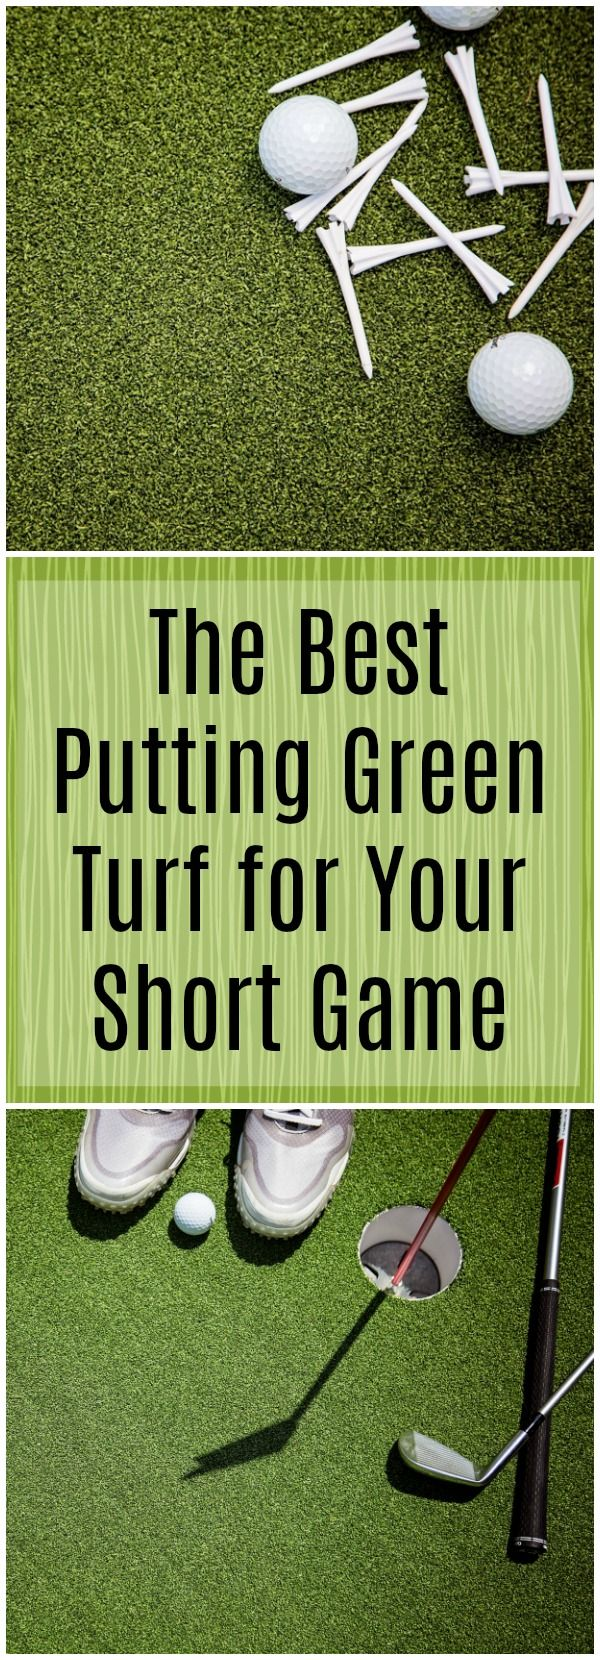 Hole, Fore, Bogey, Birdie… you probably know all the terms for golfing, but do you know the language for putting green? Learn everything you need to know about putting green turf to get your short game up to par.